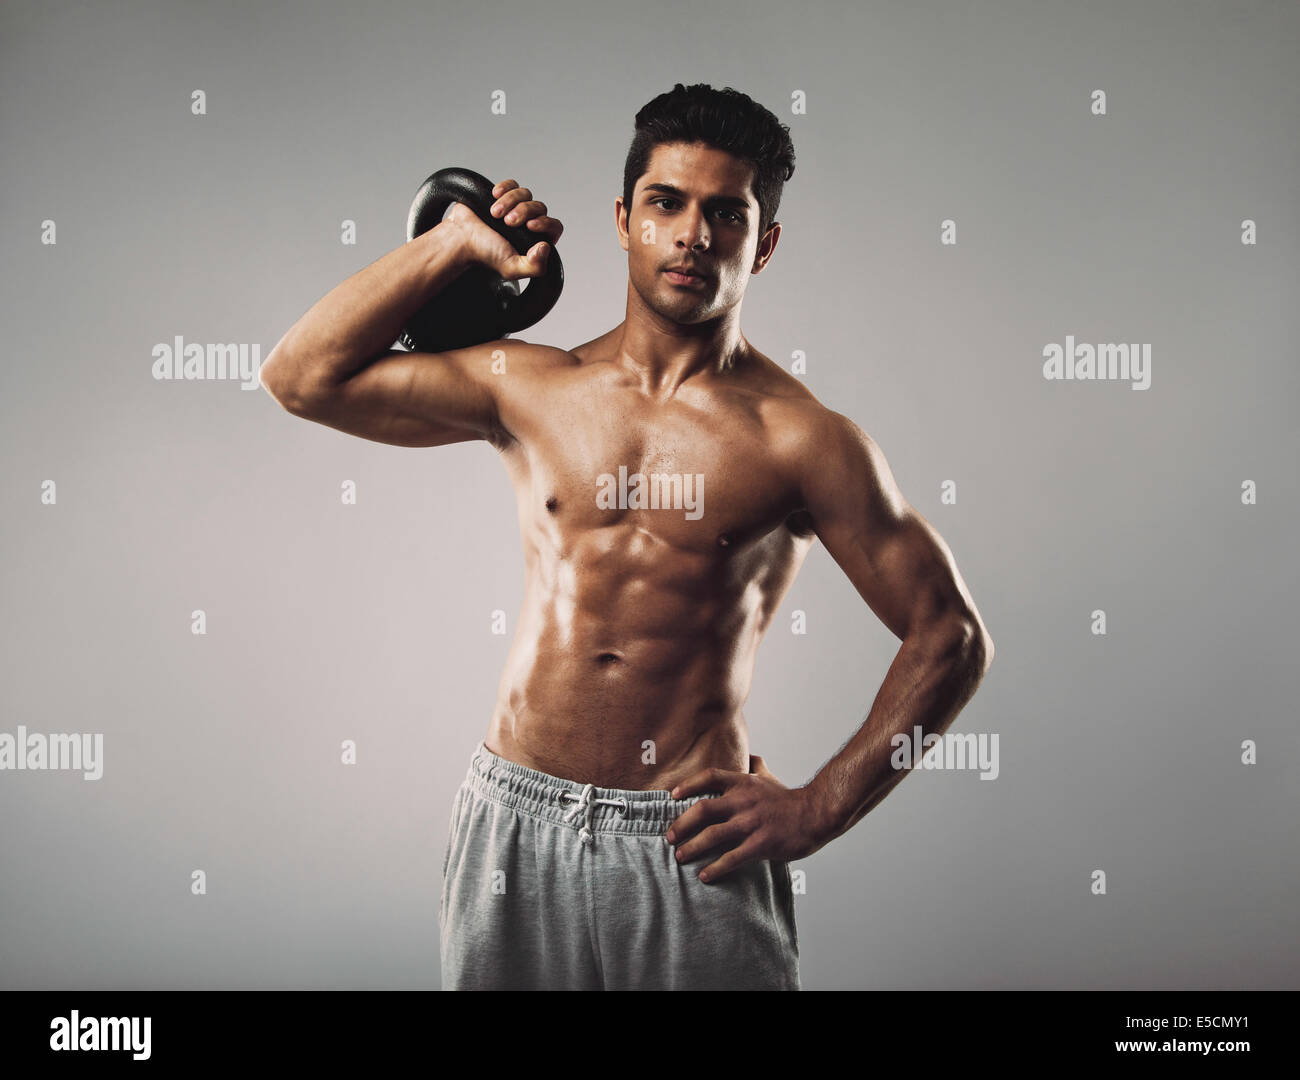 Handsome young muscular man holding kettle bell in studio. Hispanic fitness male model working out with kettlebell - Stock Image